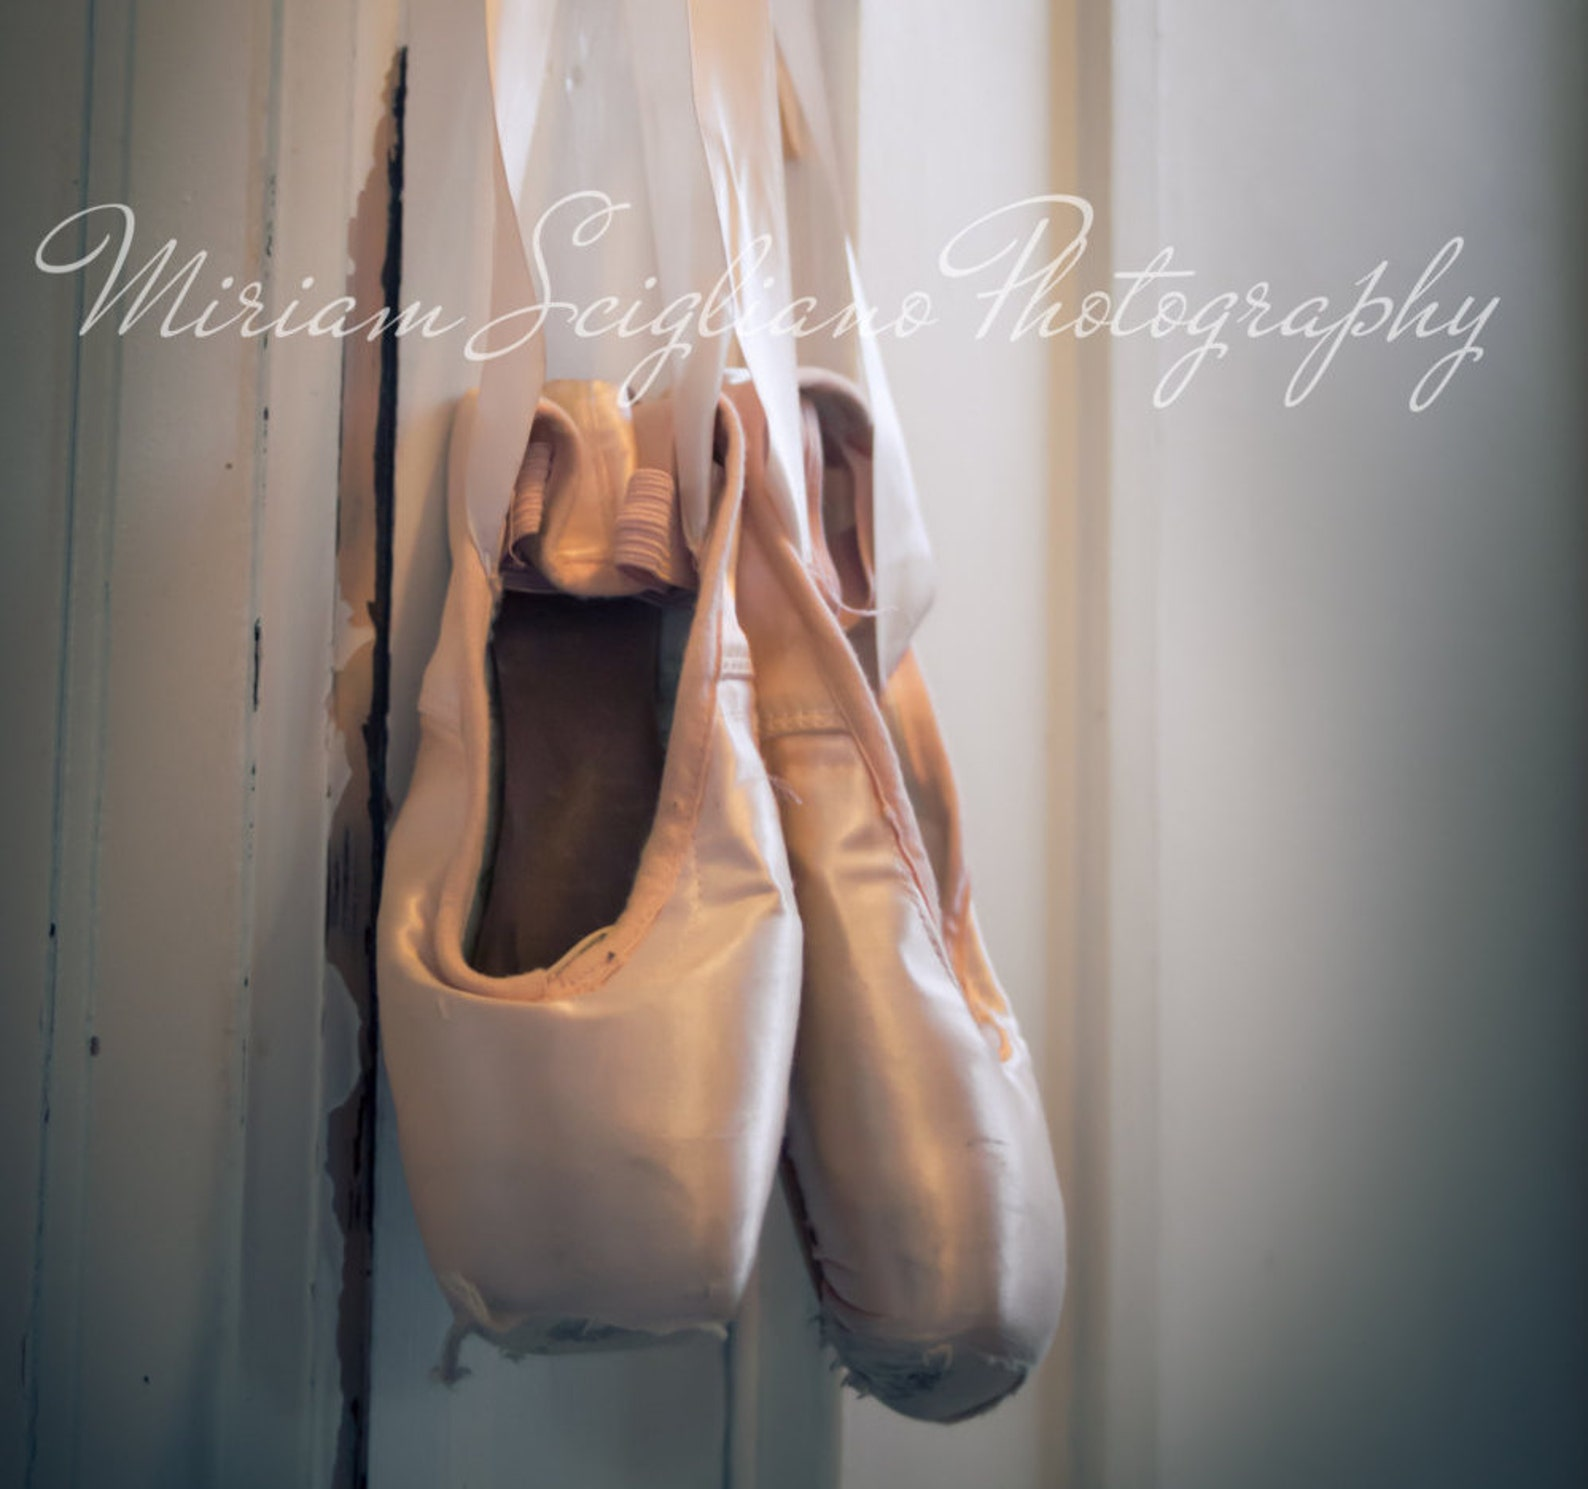 well worn pointe shoes, dance, ballet,ballet photo, girls room decor, dancer photograph, fine art photograph,ballet slippers,tee